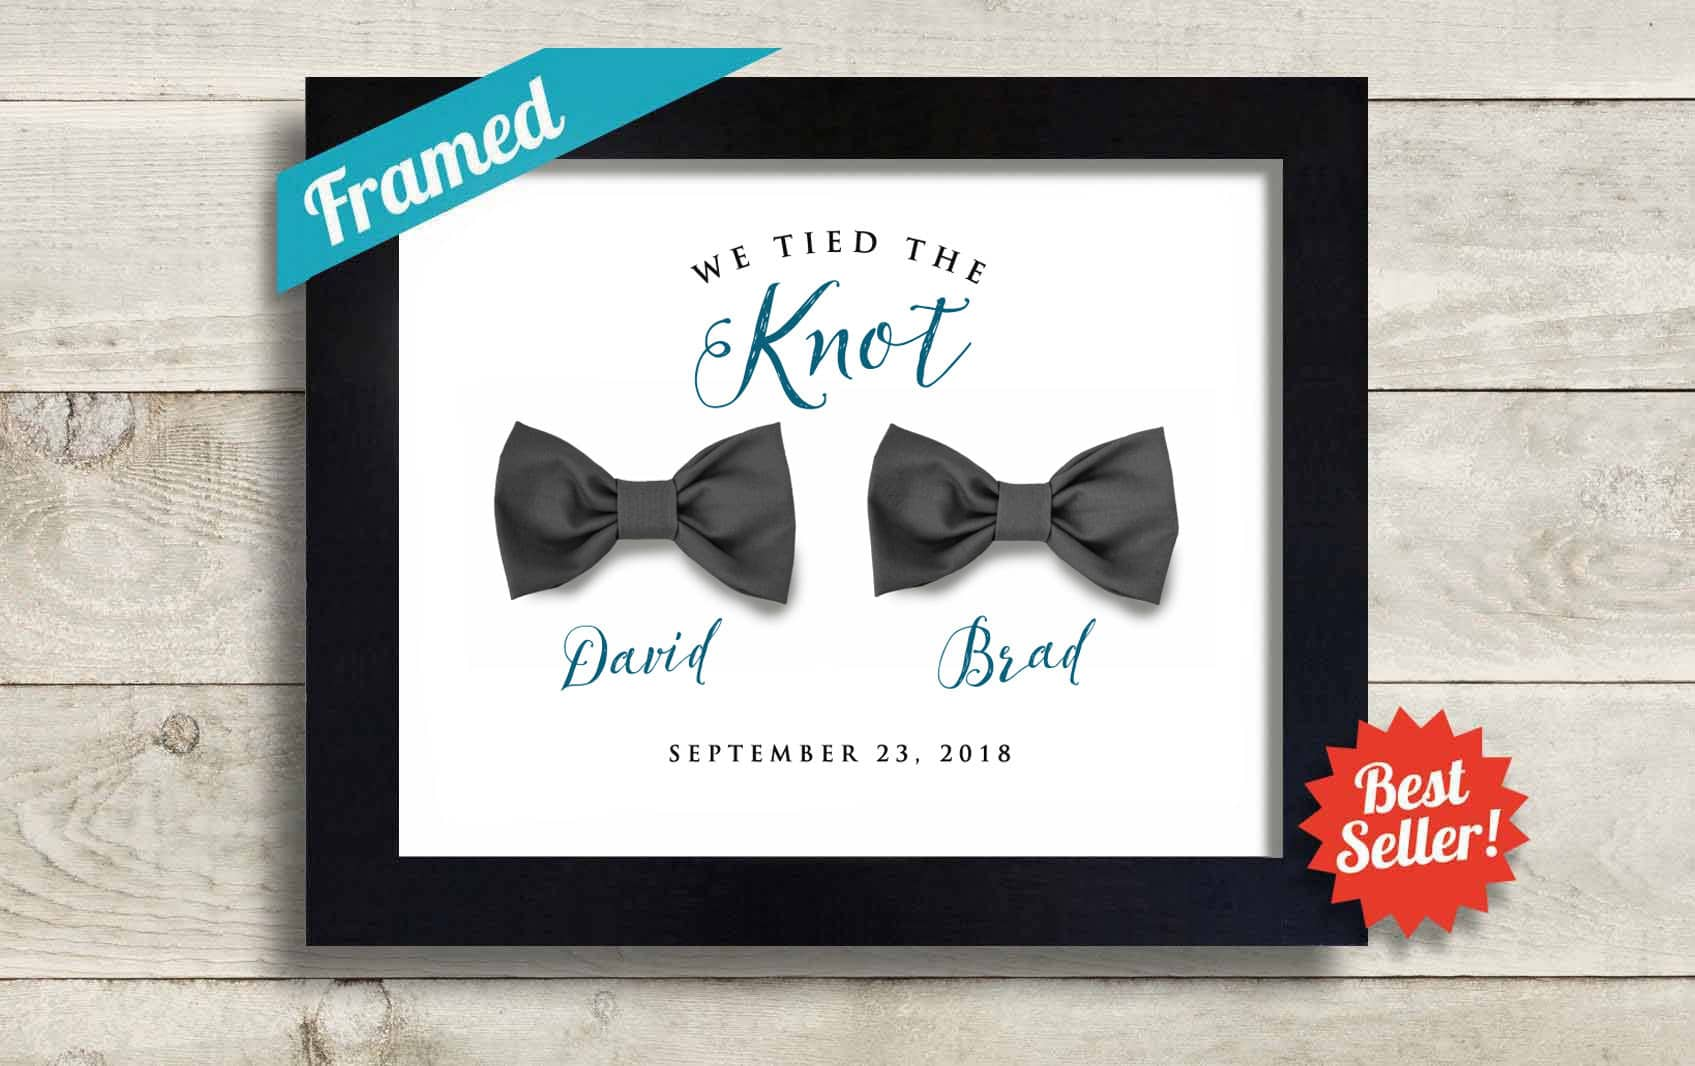 Personalized Gay Wedding Gift for Men, We Tied the Knot Bow Ties Gay Pride Newlyweds Couple